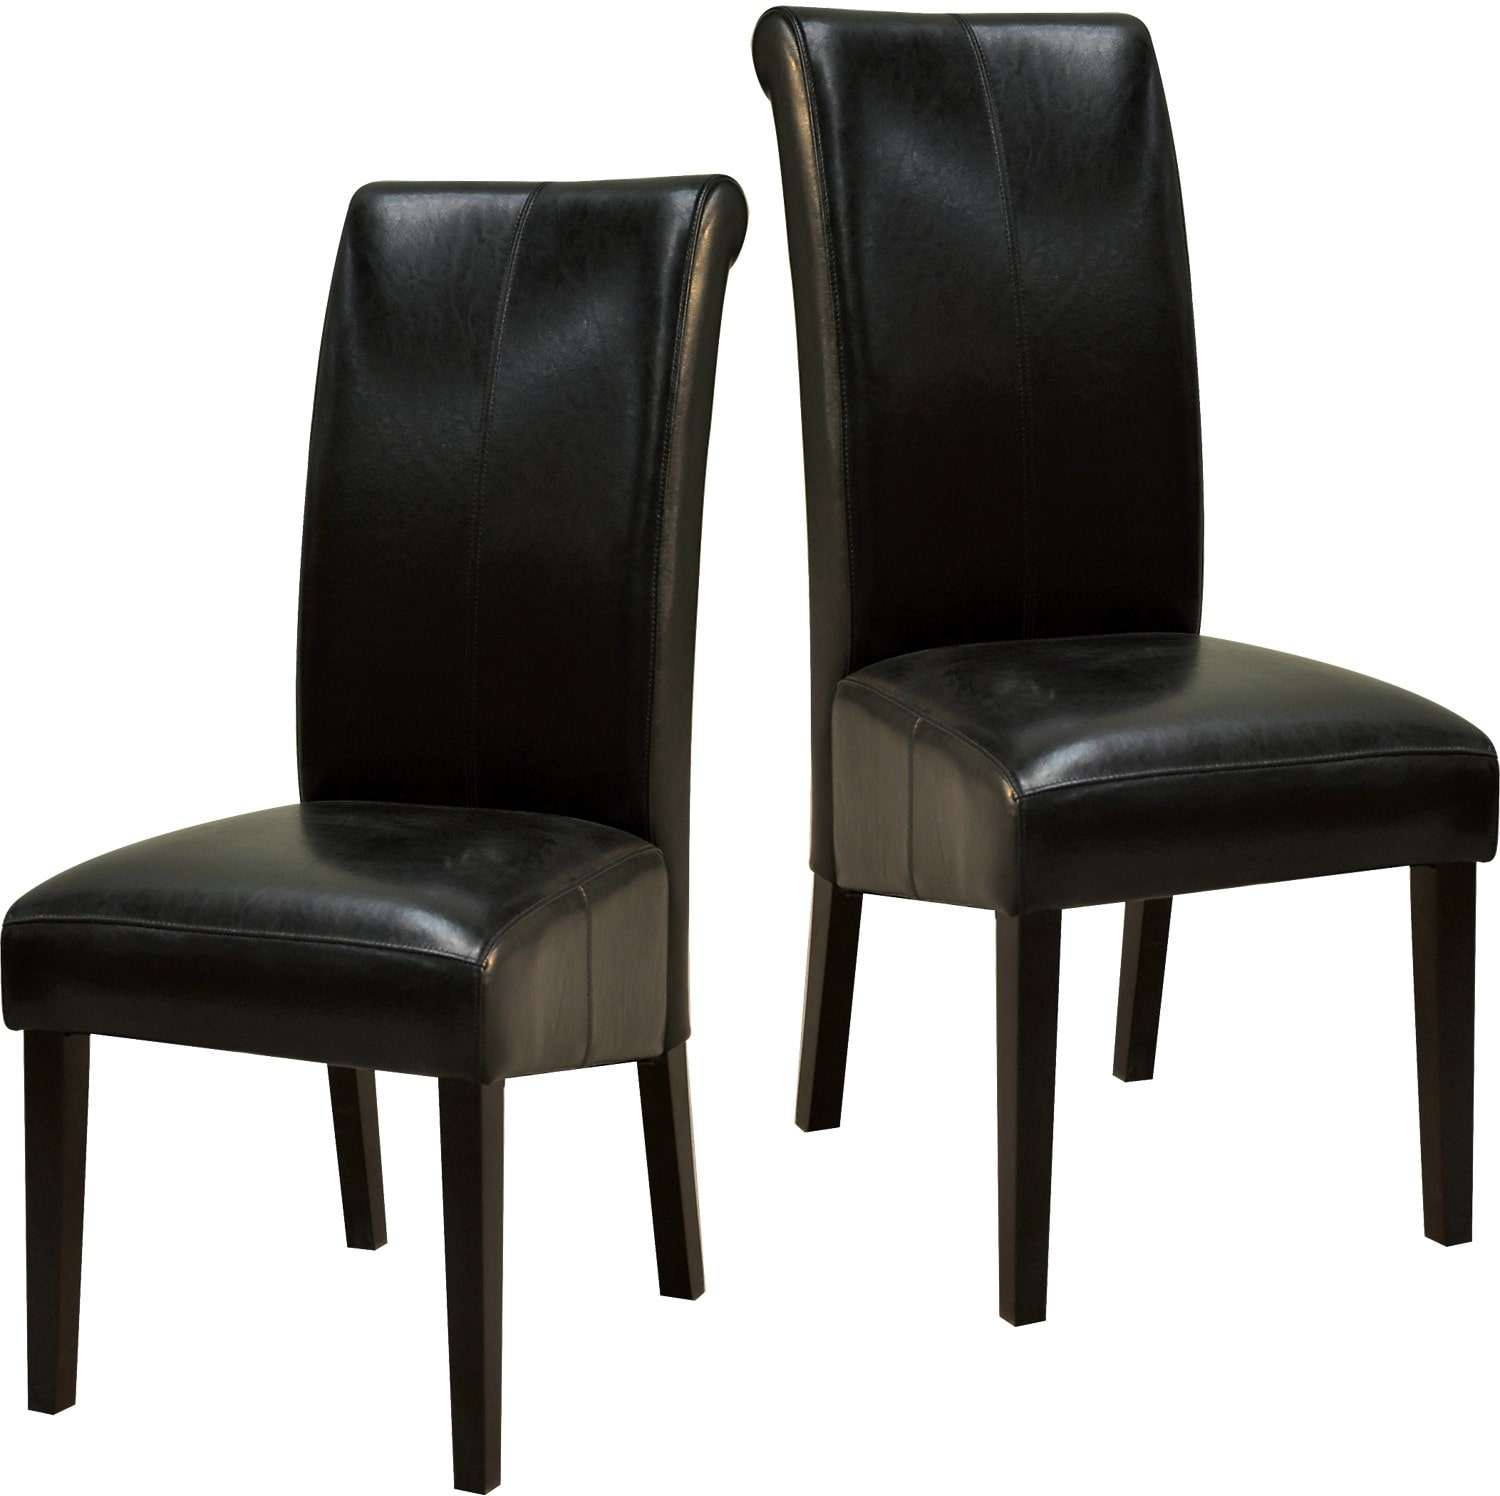 Dining Room Furniture - Idea Dining Chair Package - Black